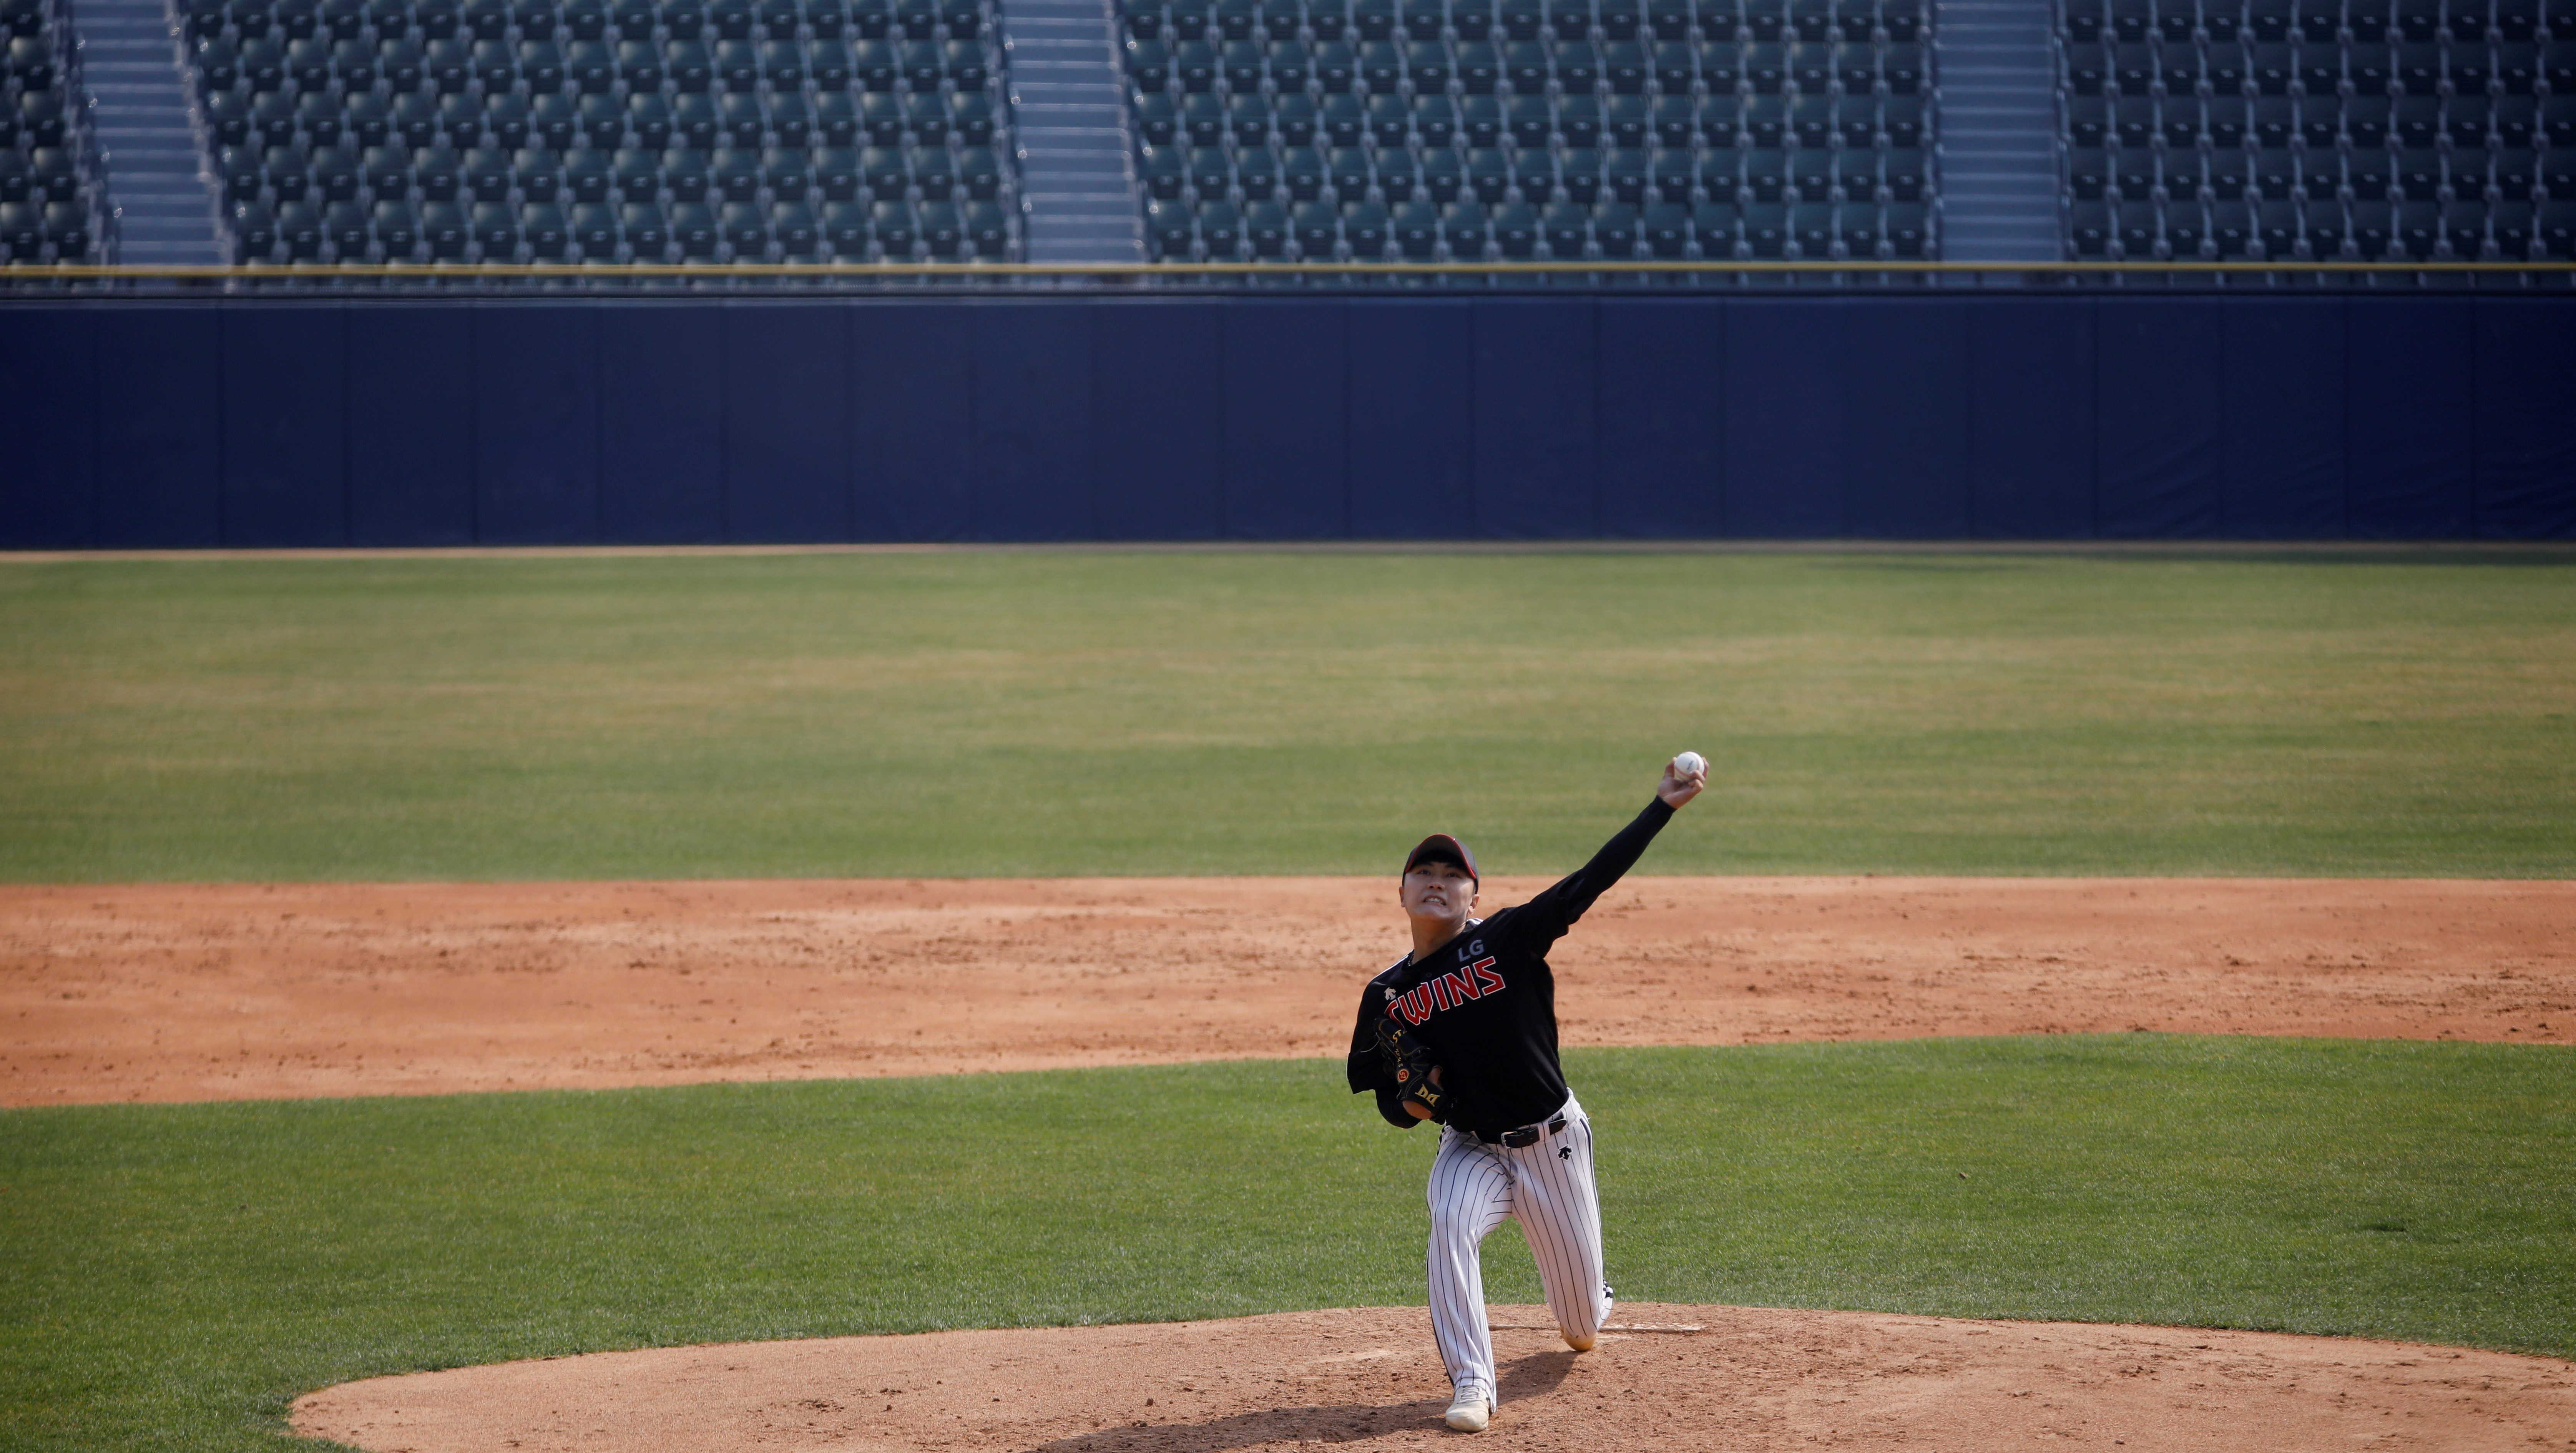 A baseball pitcher plays to an empty stadium during an online livestream